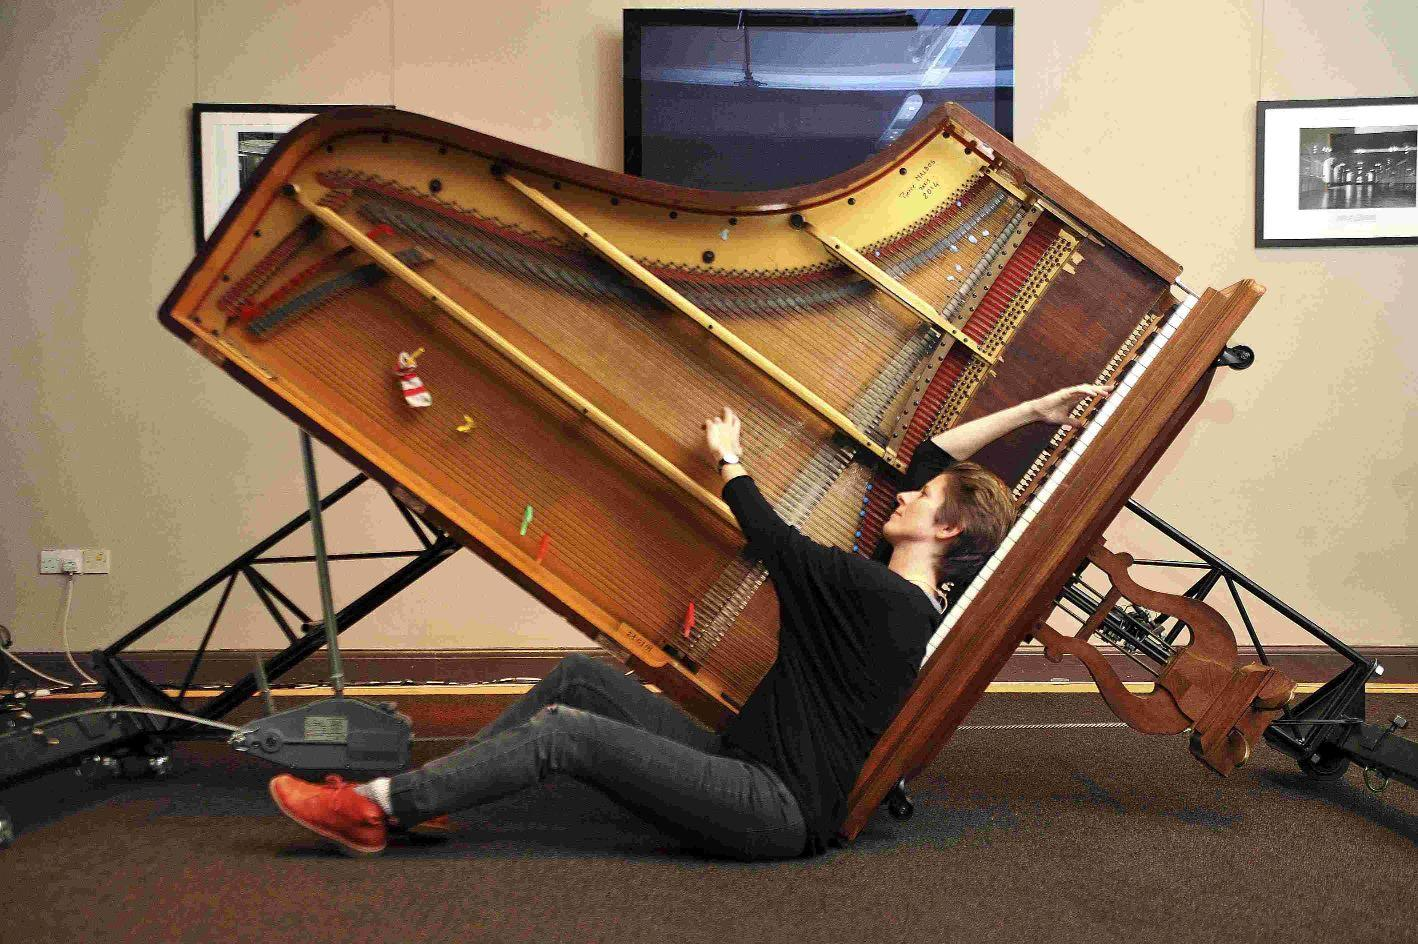 Experimental pianist Sarah Nicolls and her inside out piano at Brighton Dome